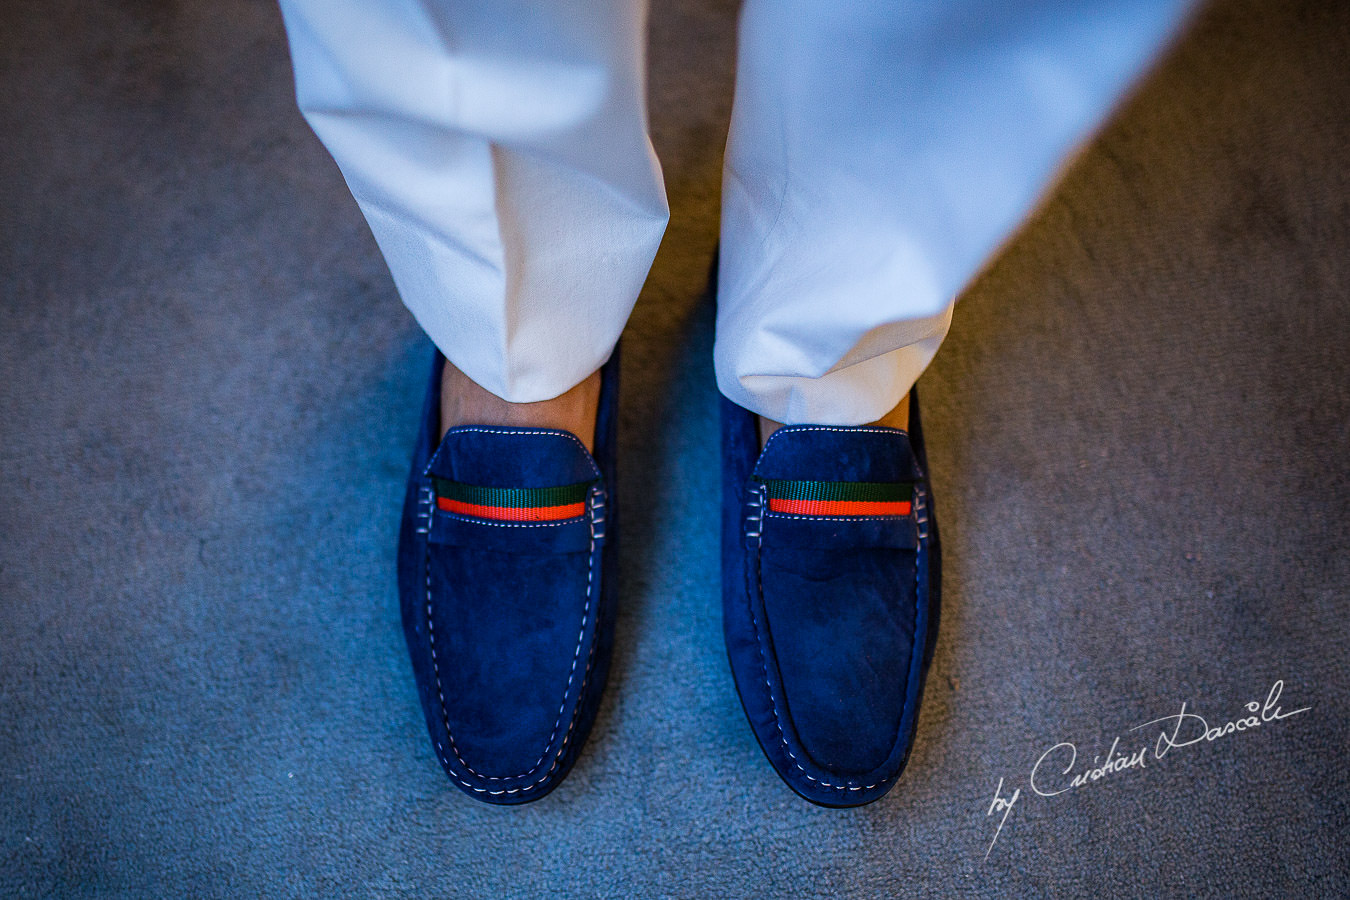 Groom's shoes captured during a wedding photography at the Lighthouse Limassol, by Cyprus Photographer Cristian Dascalu.